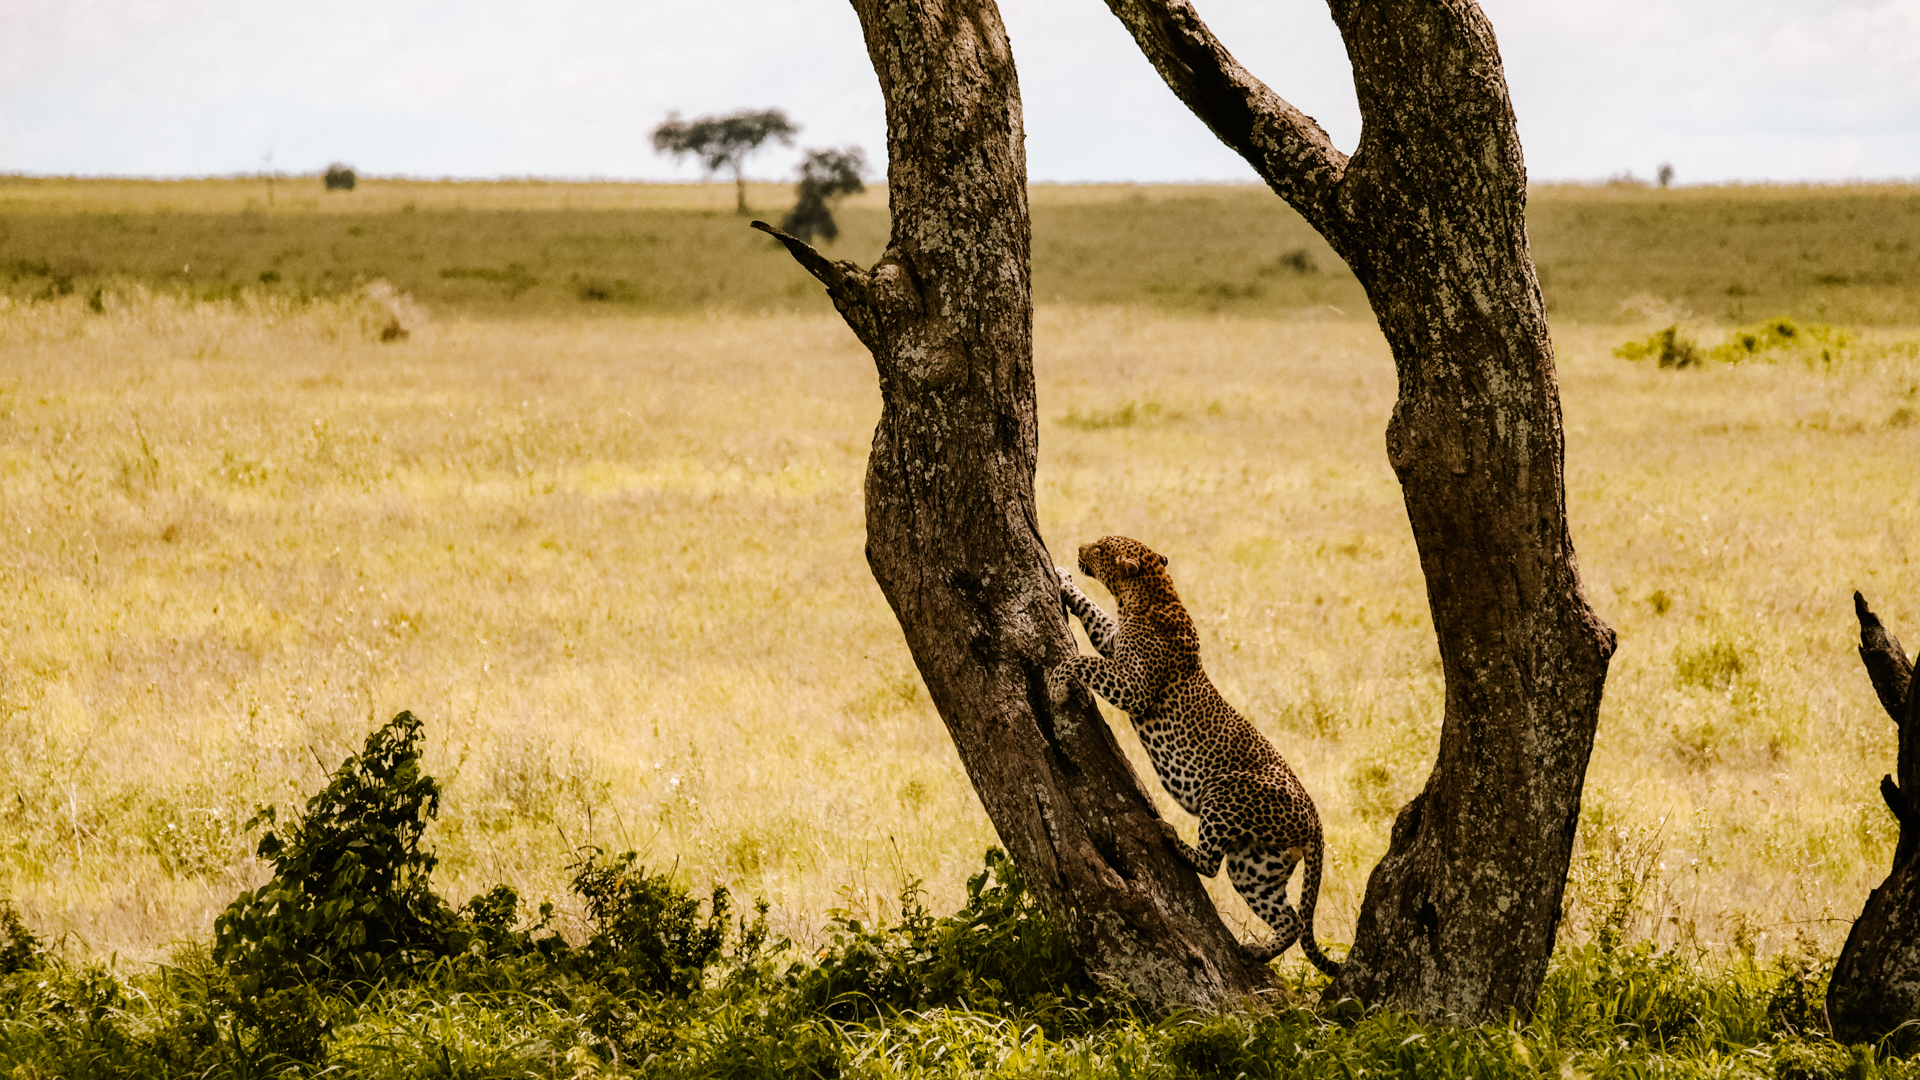 A African leopard climbing up a tree in the Serengeti National Park, Tanzania